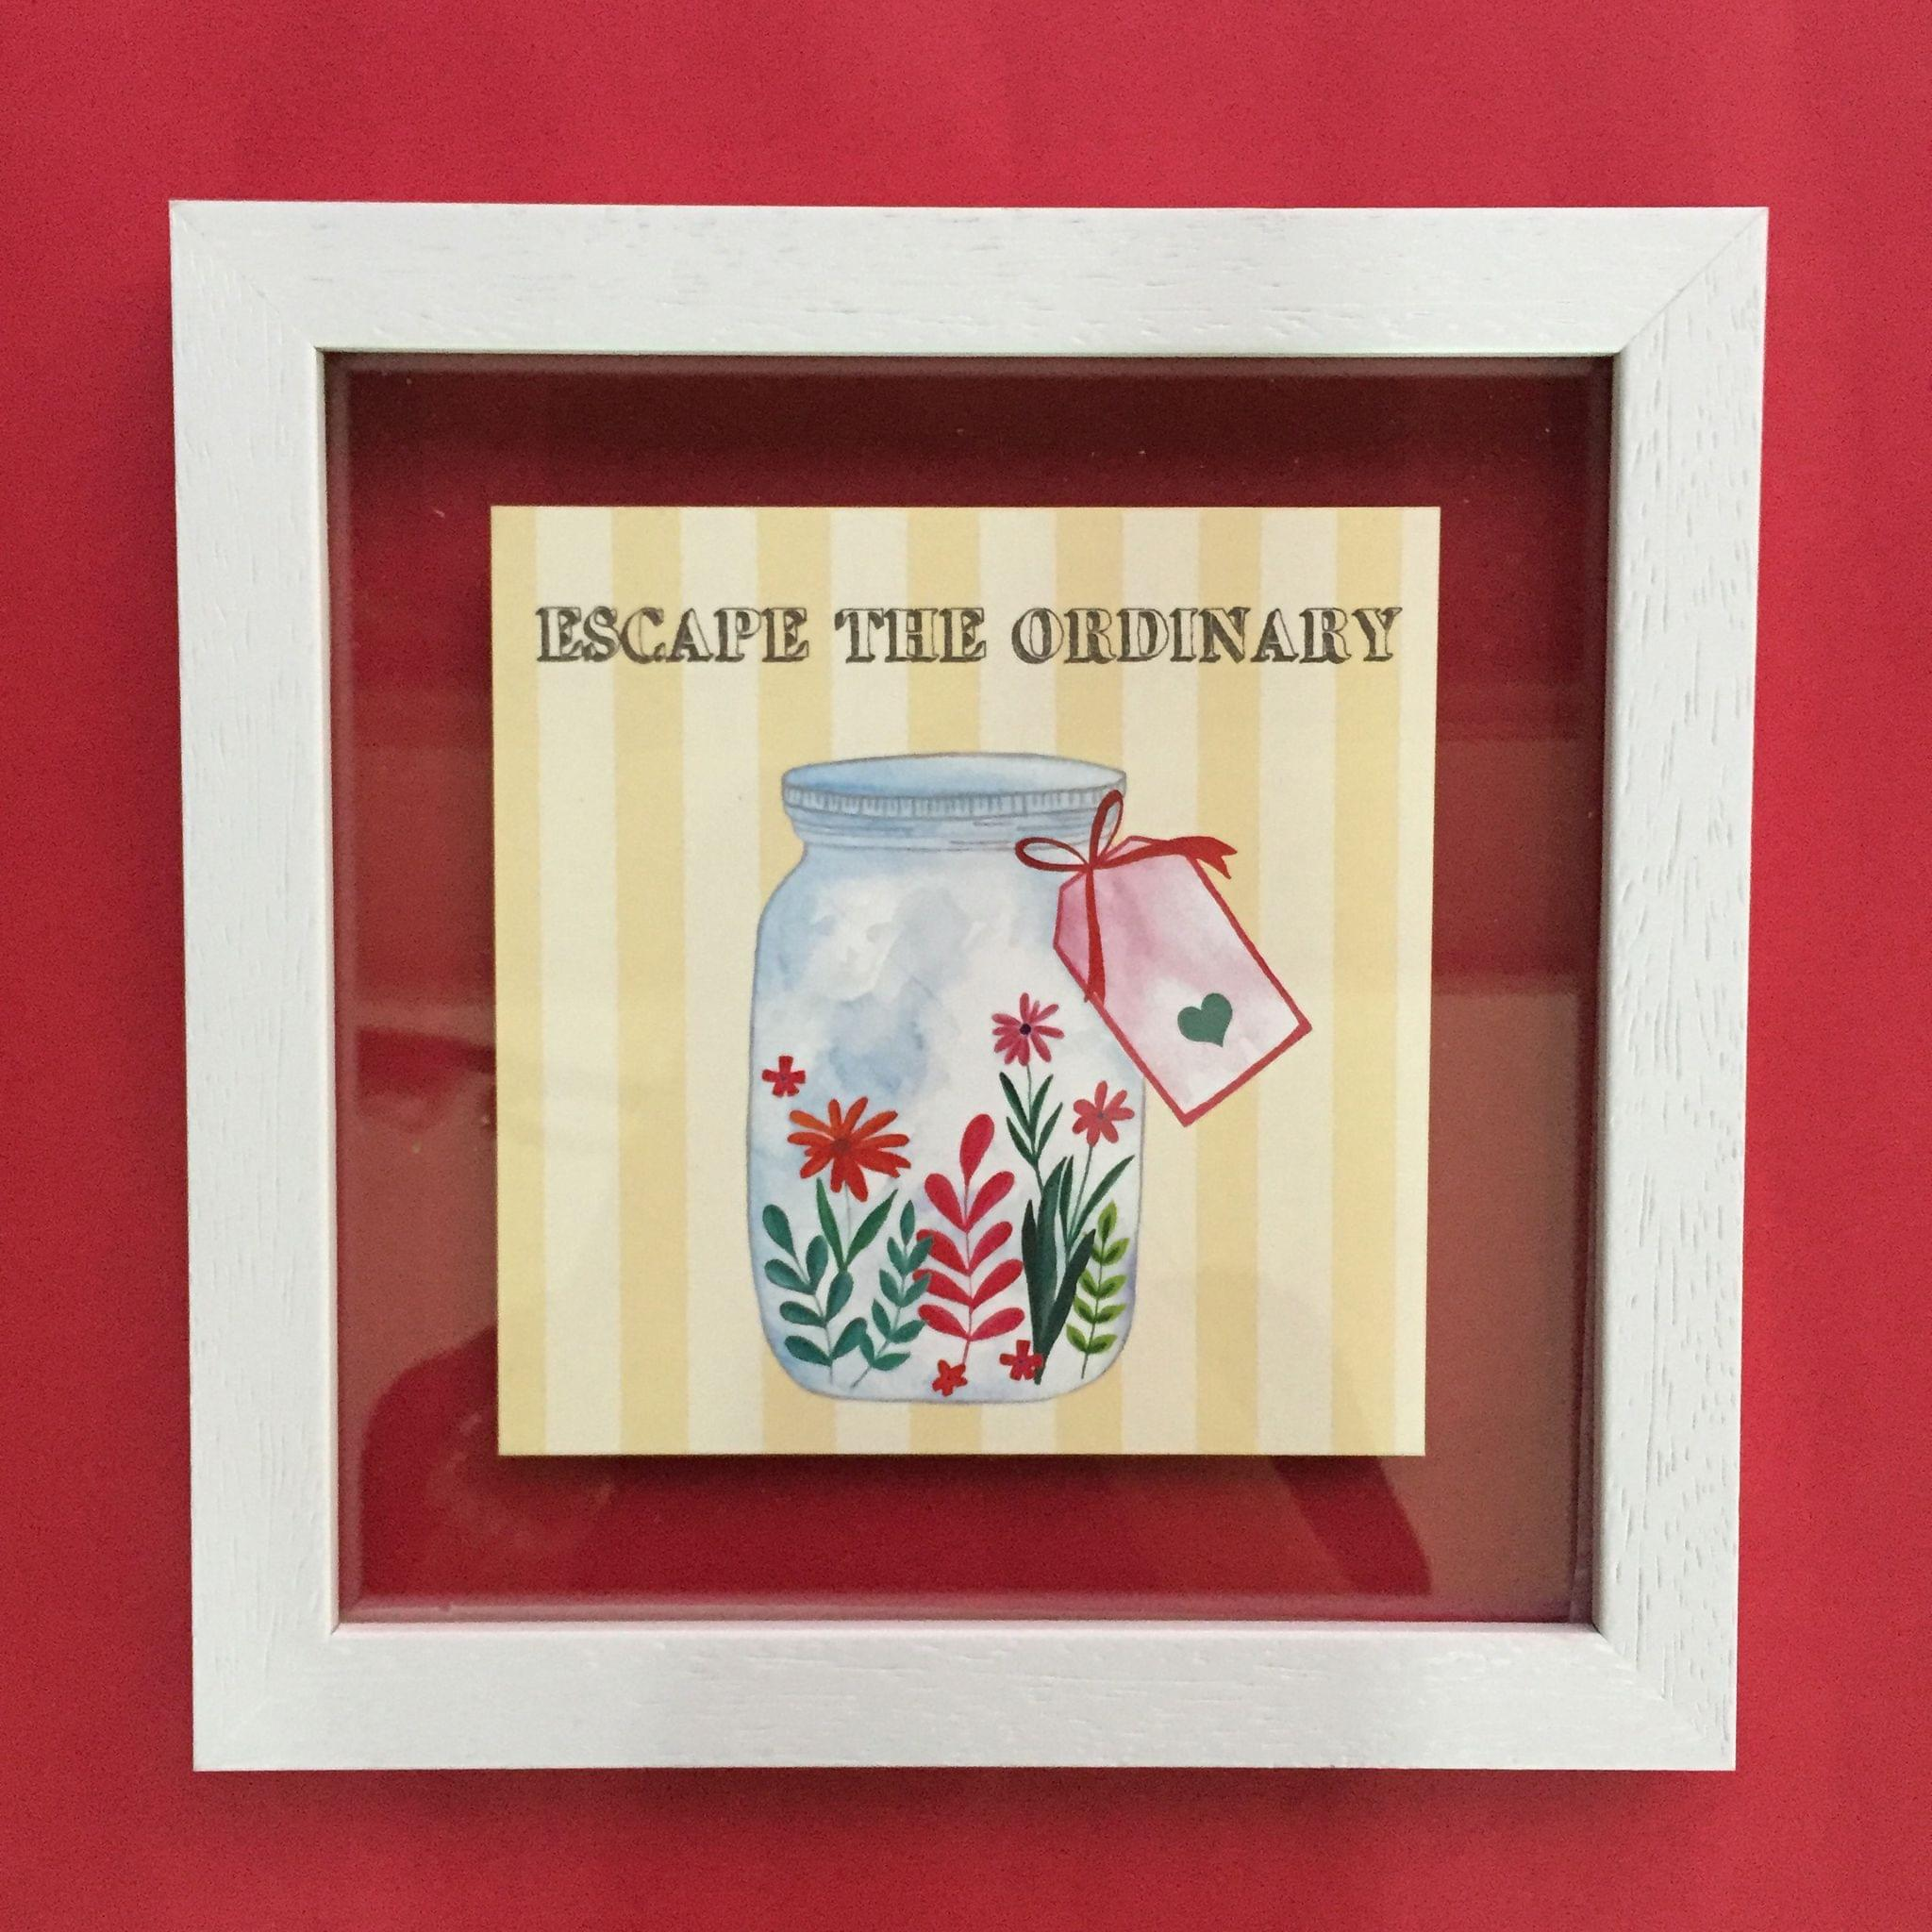 Escape the Ordinary' Wall Frame